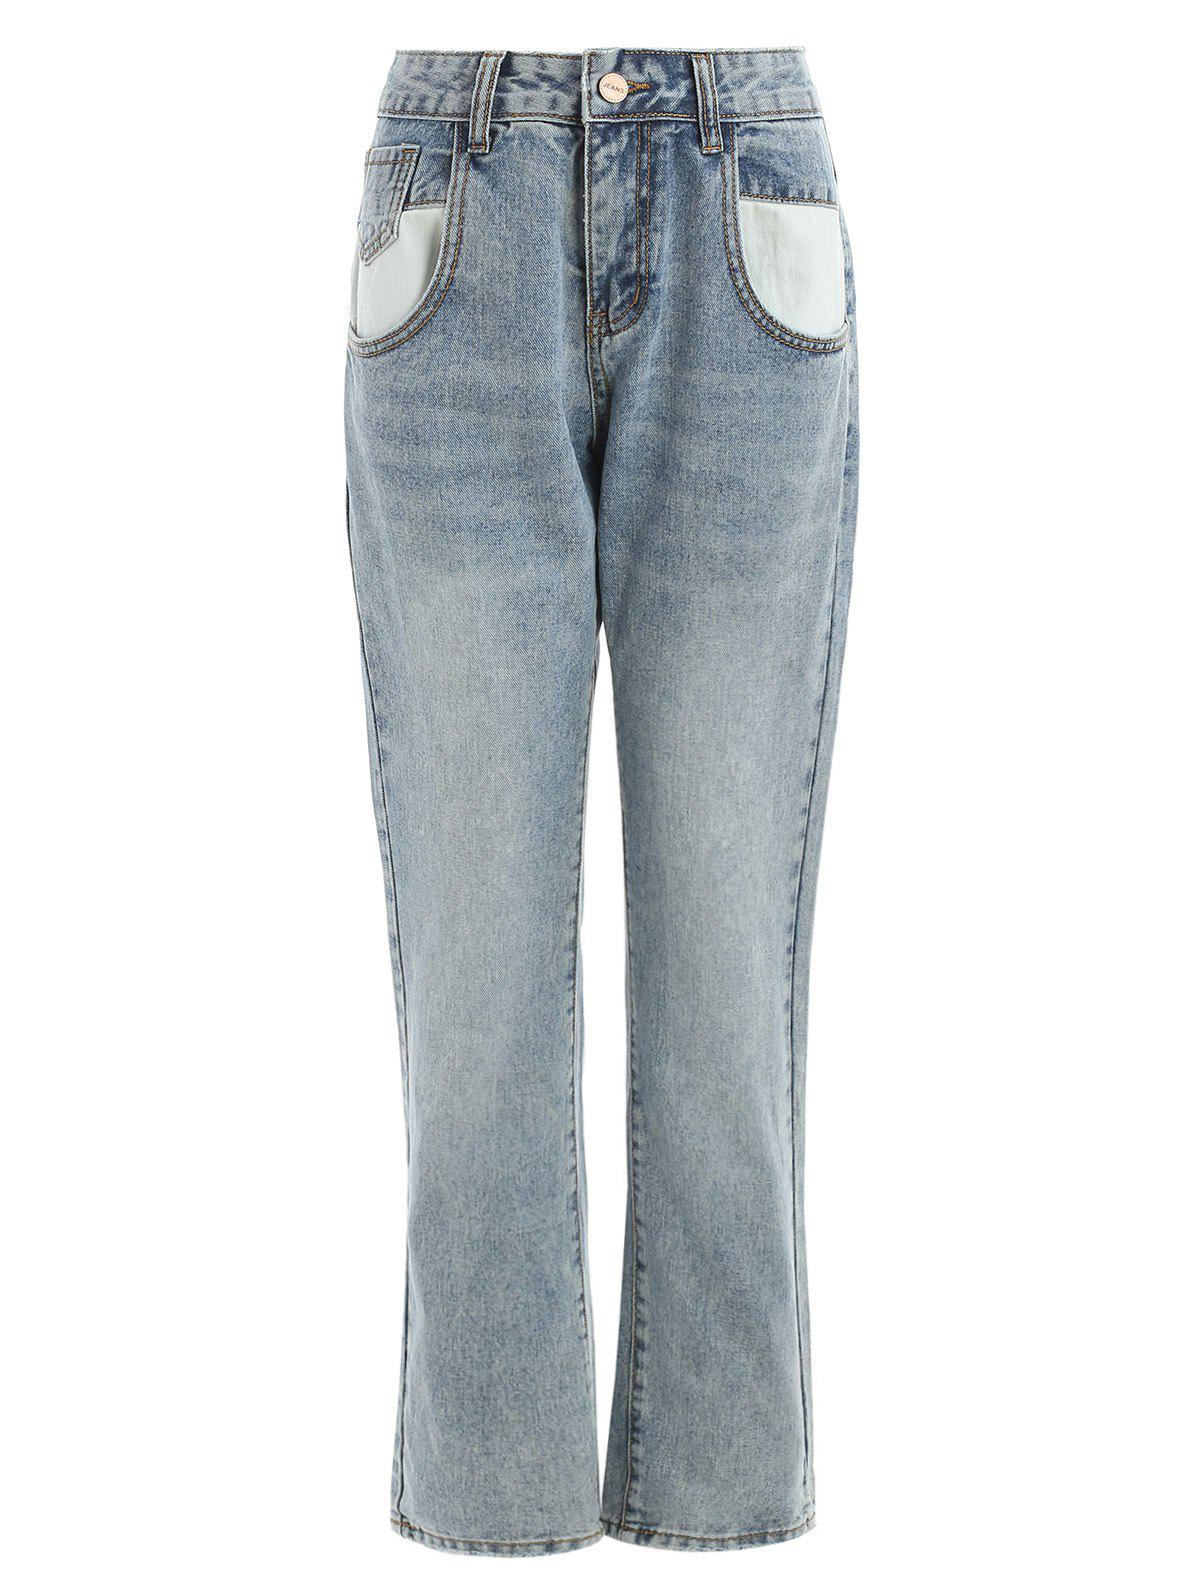 Unique Mid Waisted Jeans with Pockets